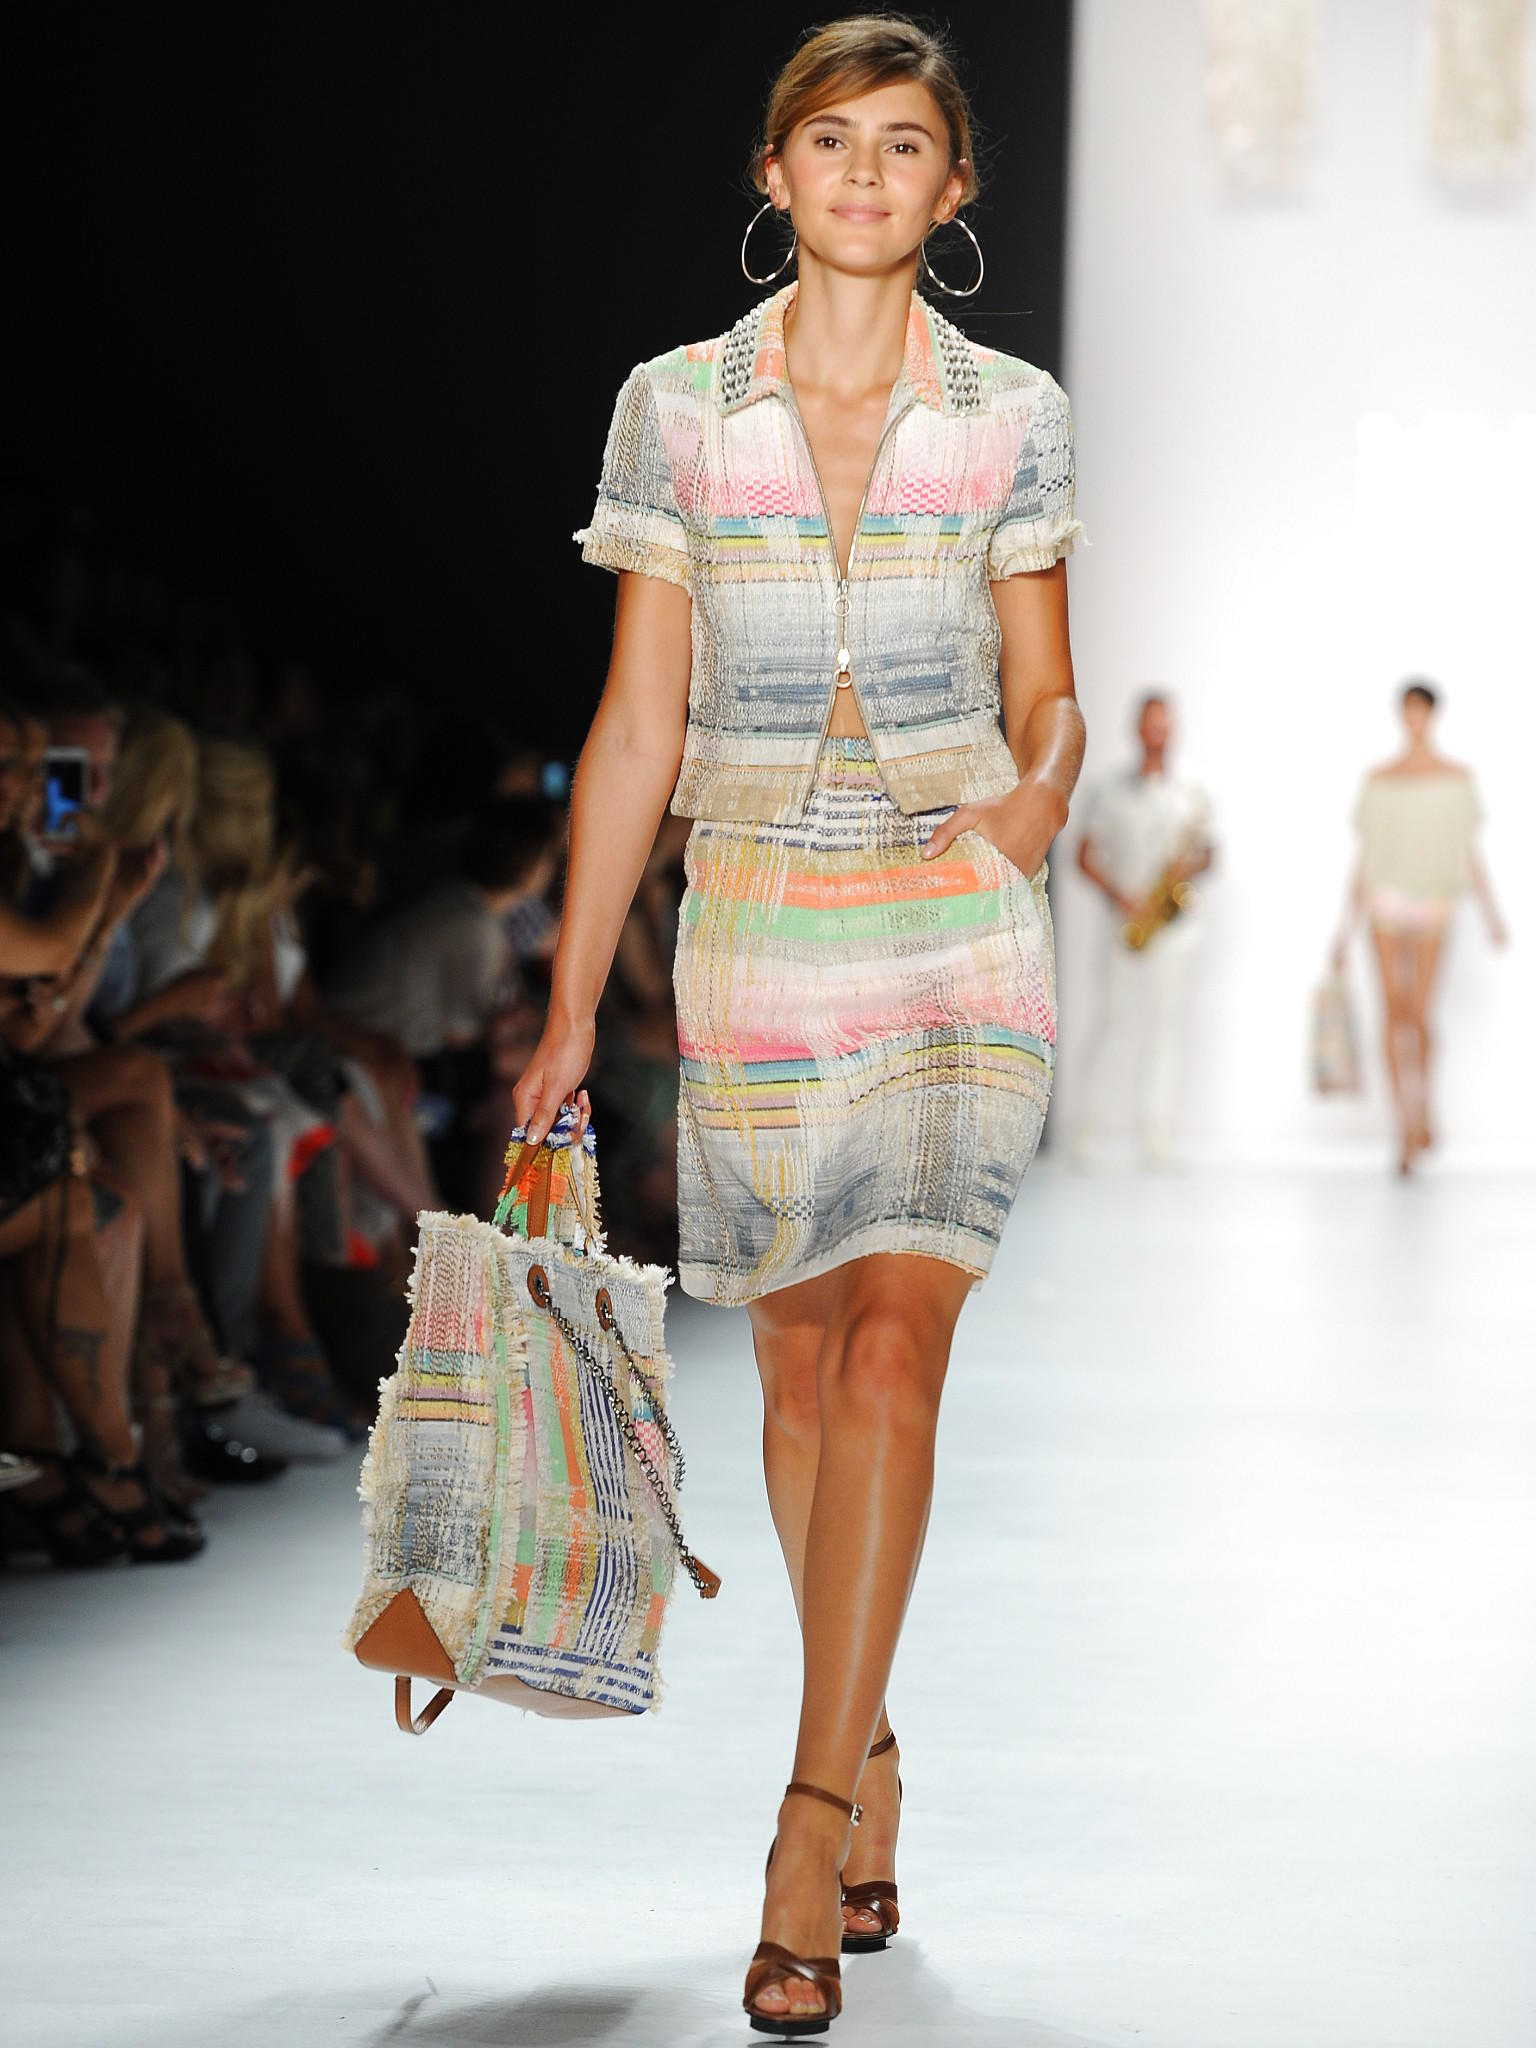 Germany's next Topmodel Kandidaten bei Fashion Week in Berlin 2015